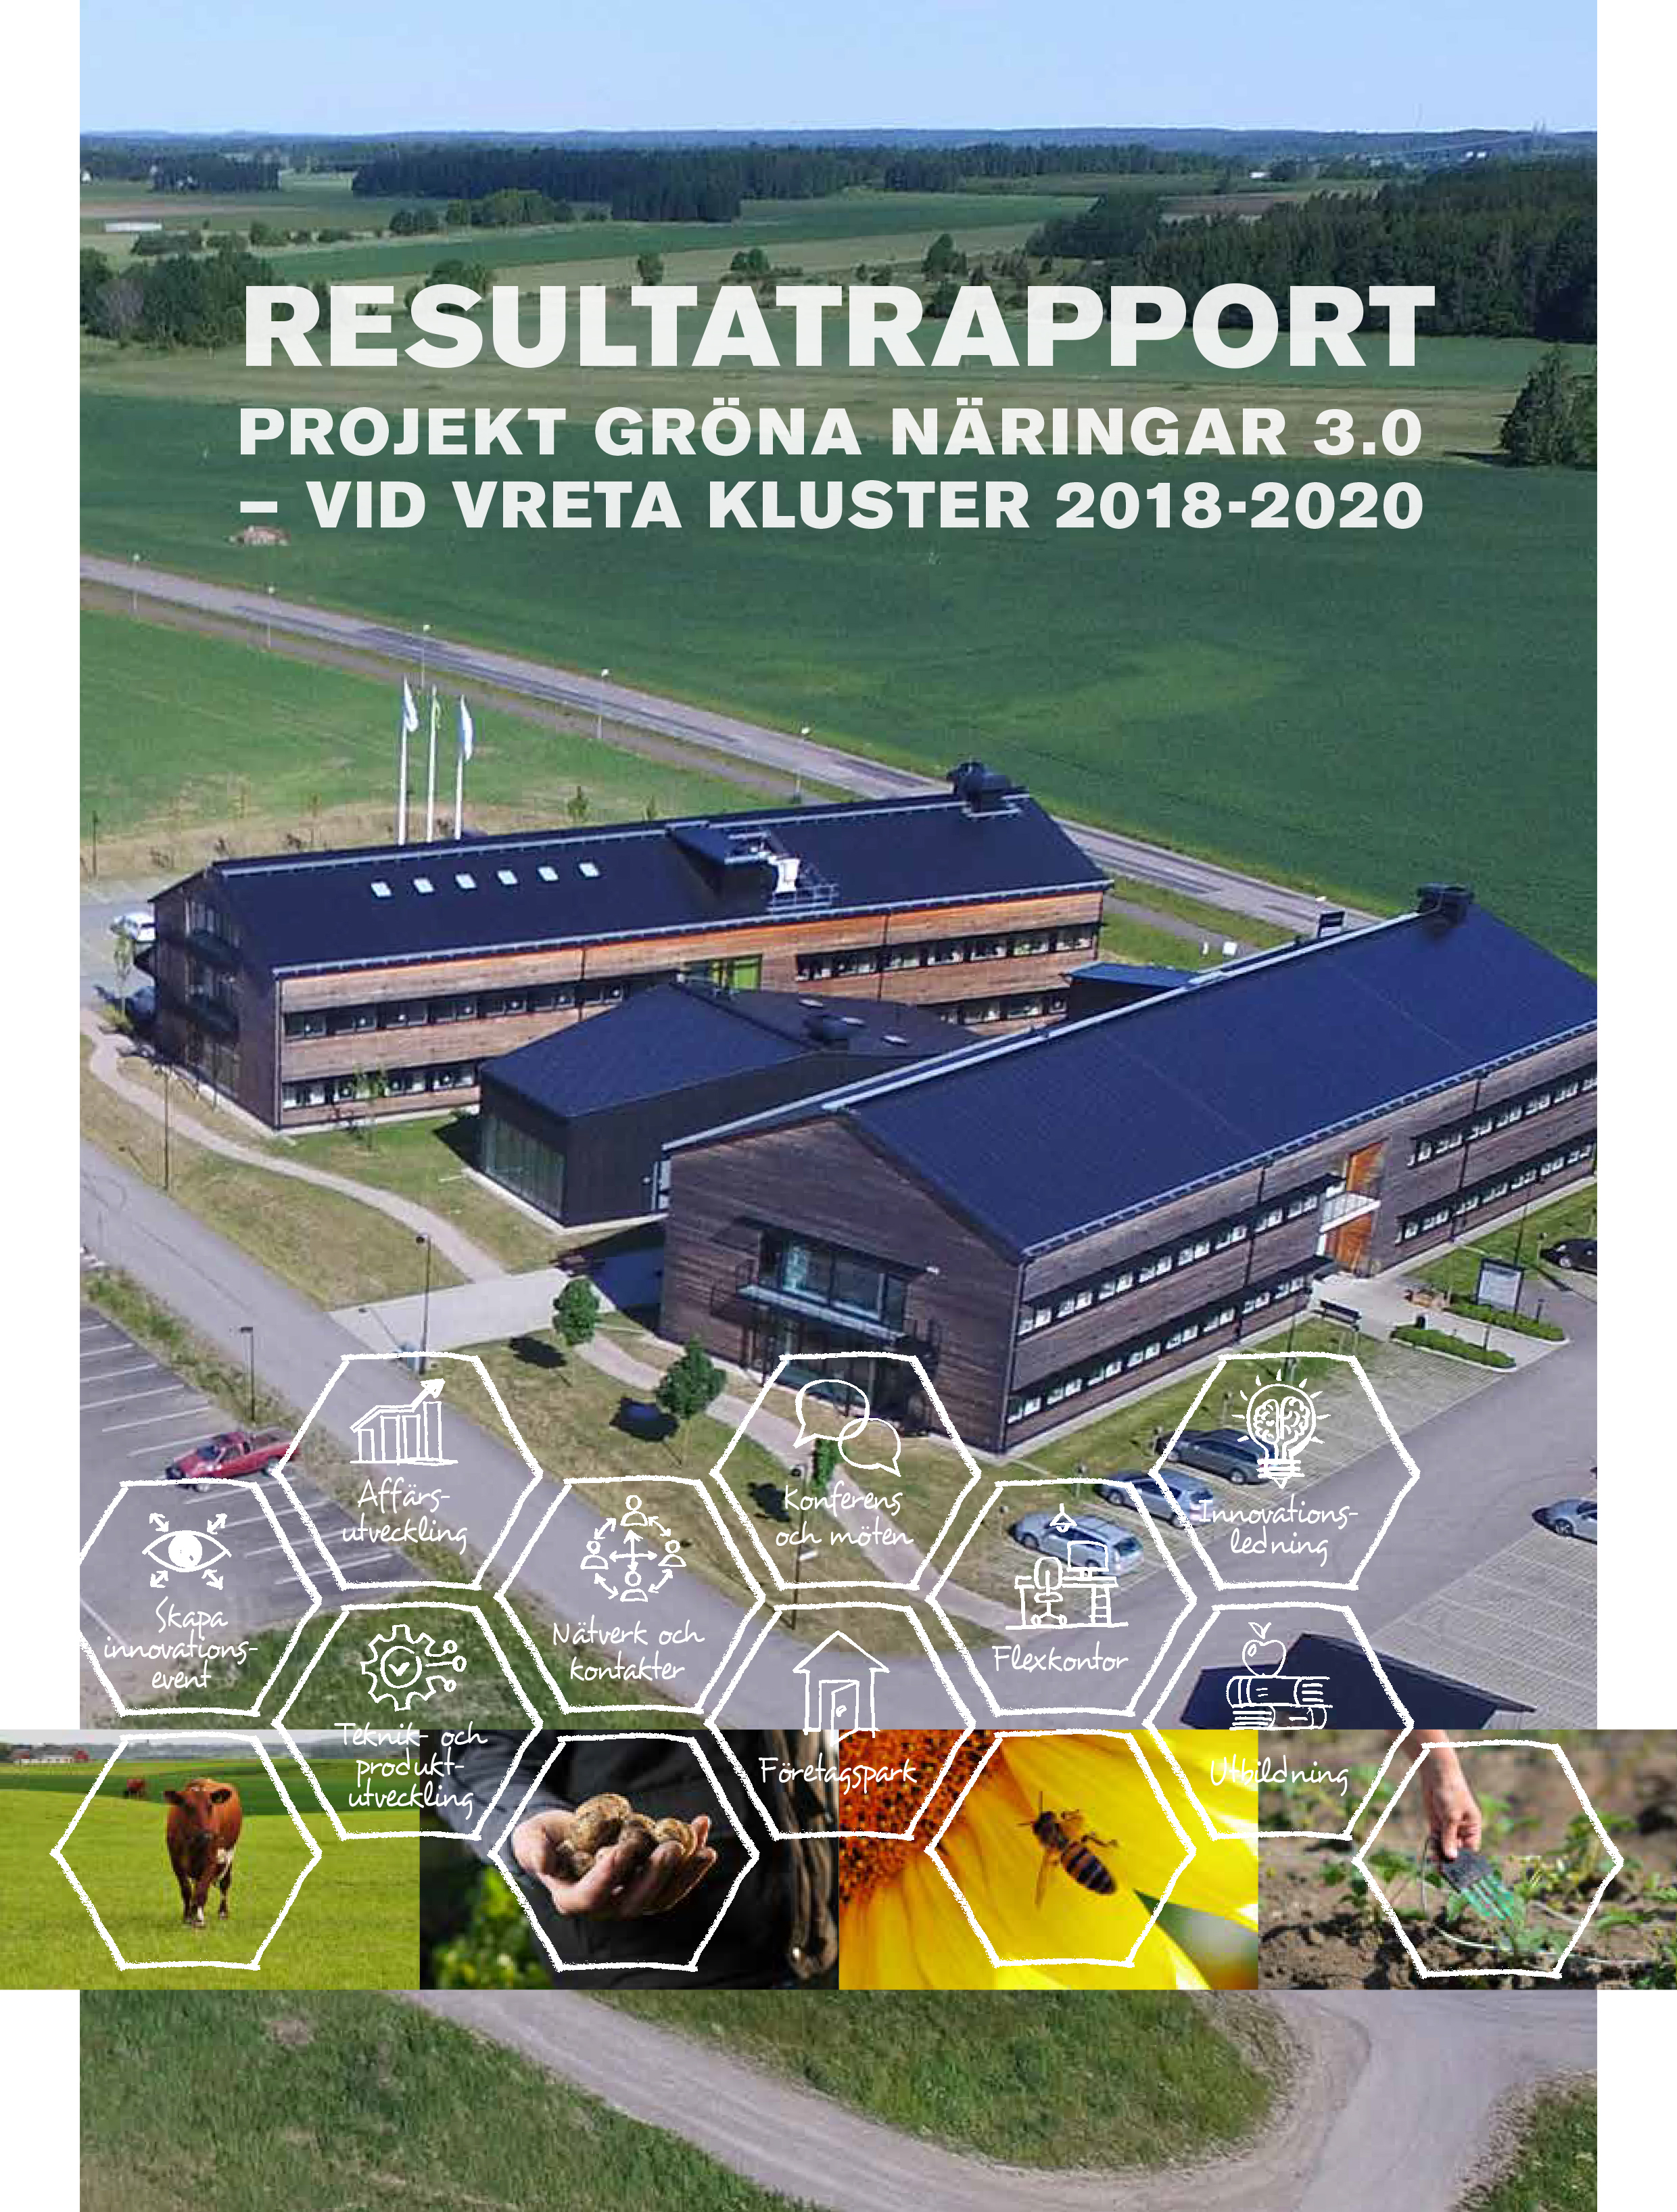 VK Resultatrapport 20 slutversion 1